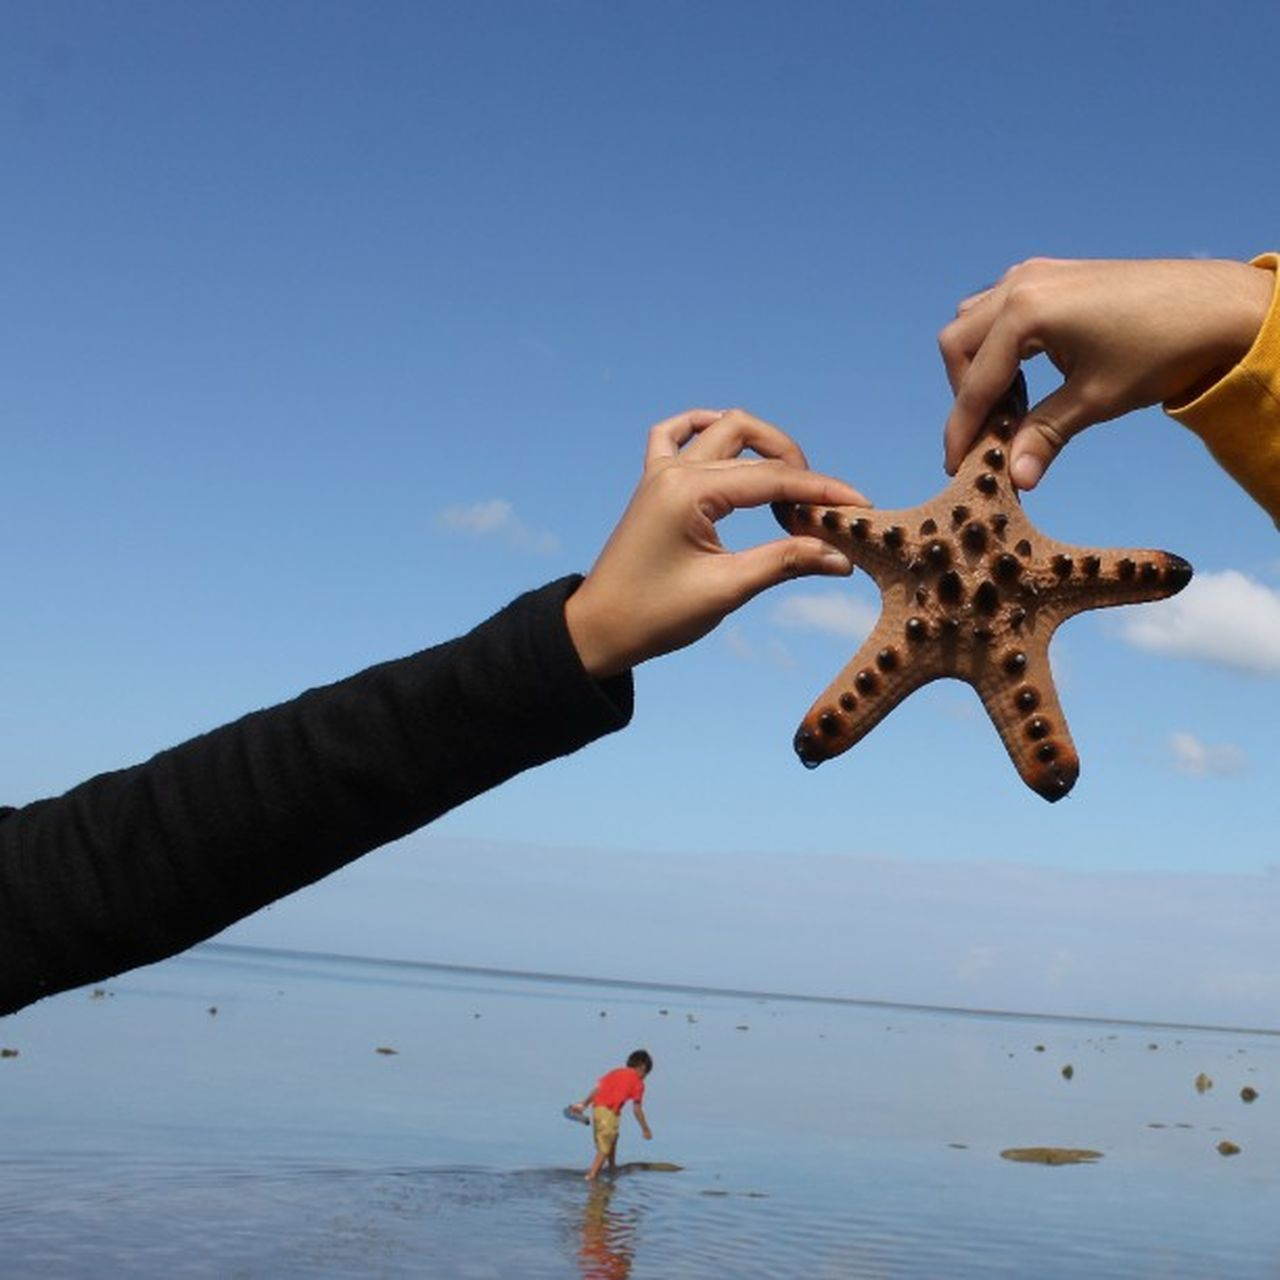 reach for it and then make a wish Thestarpart2 Docusinthesand Unscripted loveSanFrancisco 🎥 Star Sea Sand Beach Starfish  Catch Day Province Life U Philippines Horizon Kid Rural